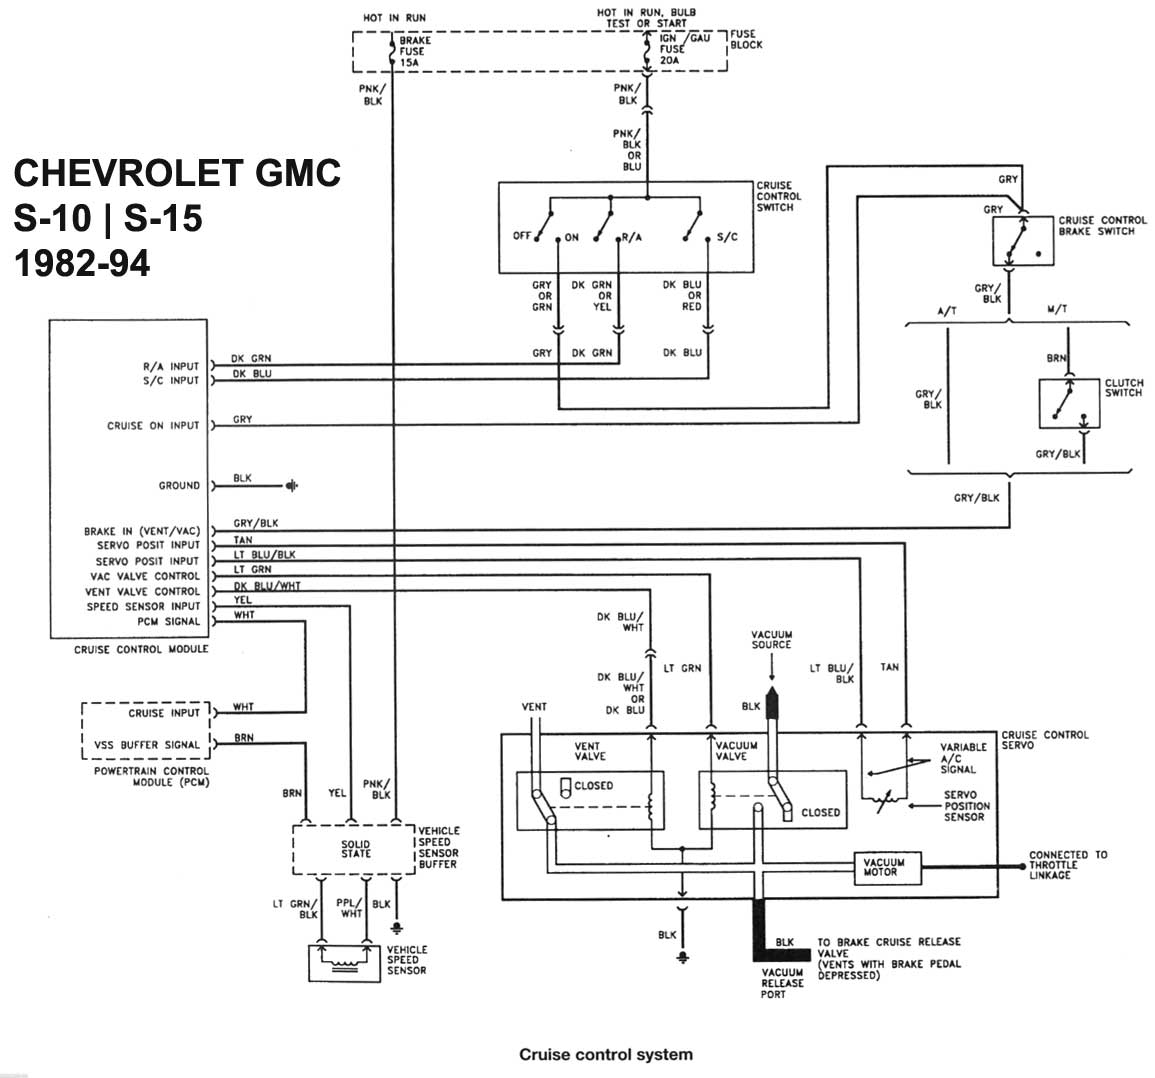 chevy s10 radio wiring diagram pajero 4m40 1989